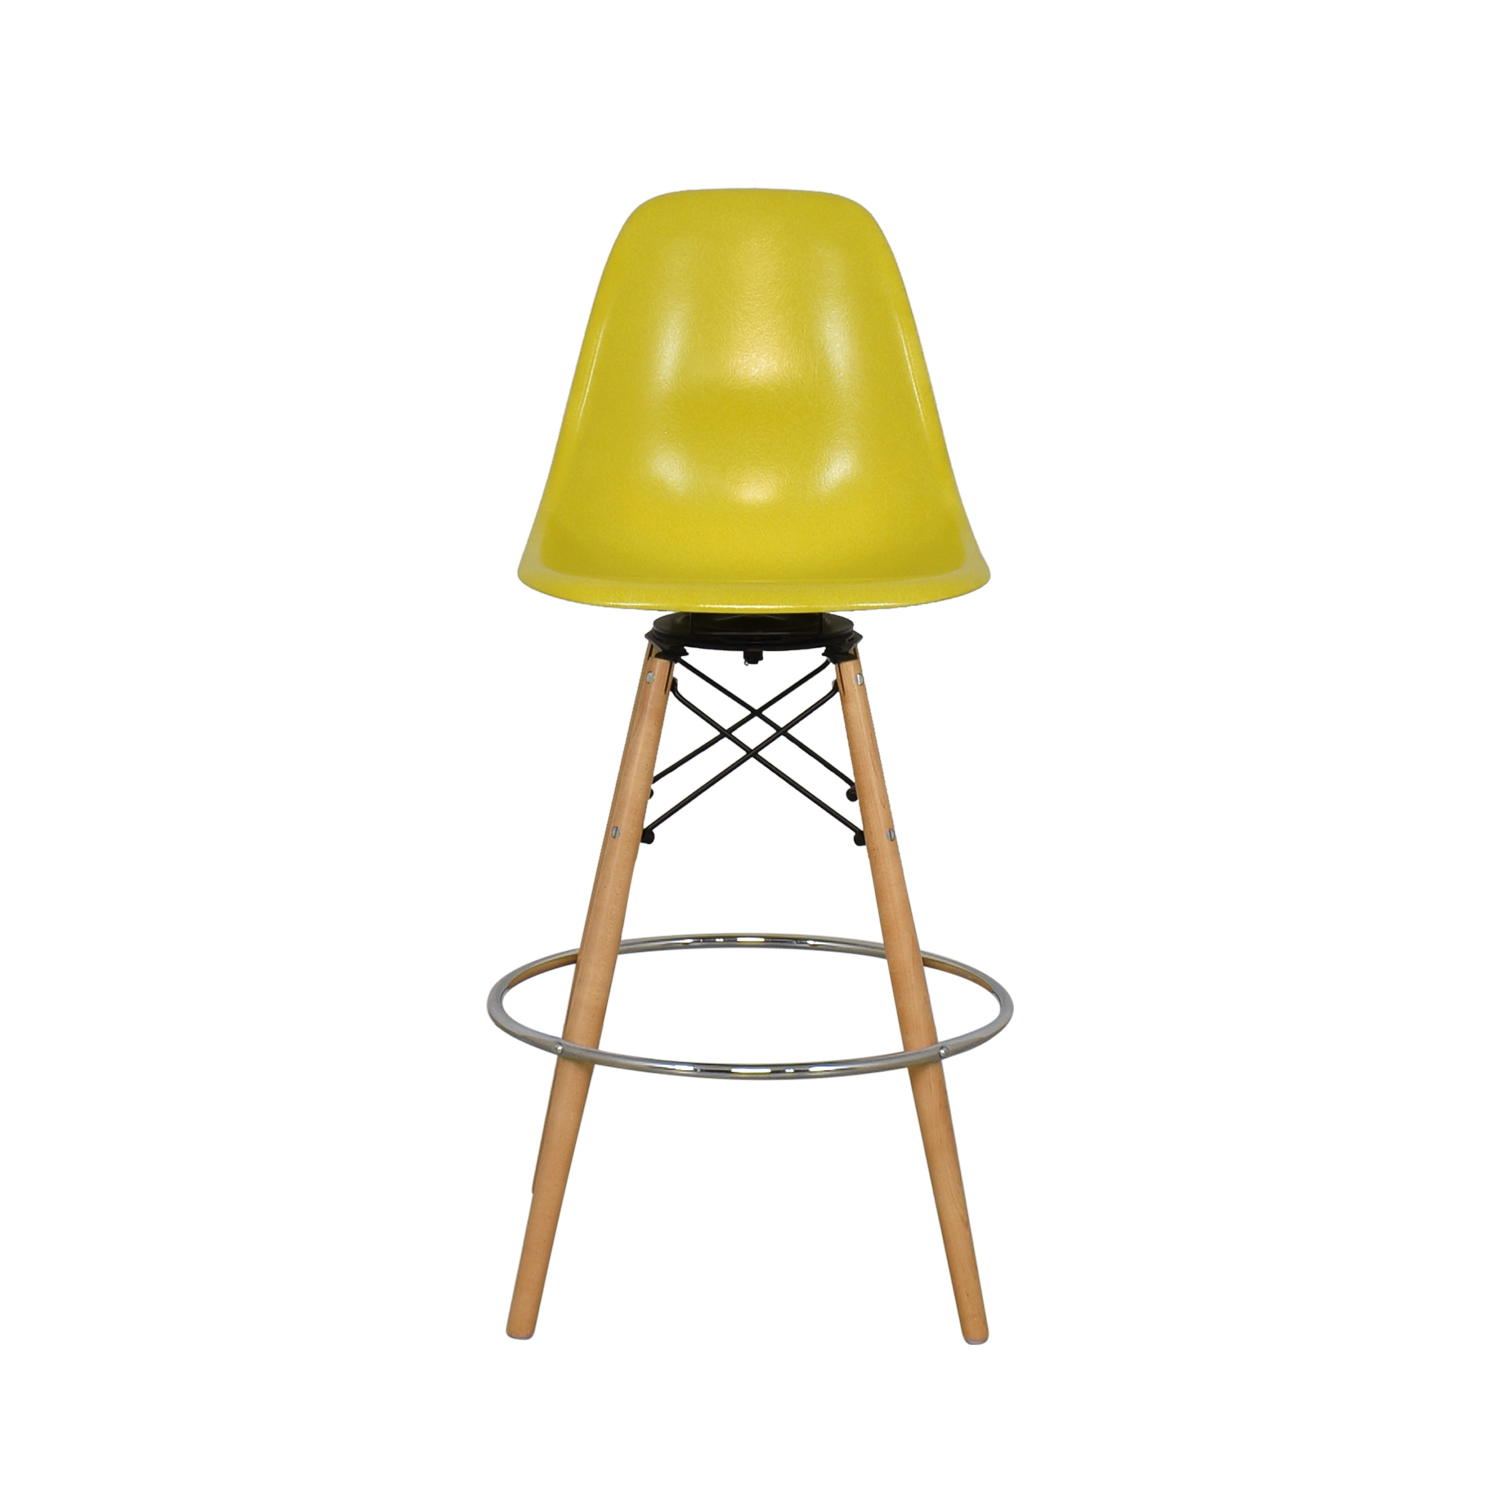 Modernica Modernica Case Study Side Shell Dowel Bar Stool Chairs